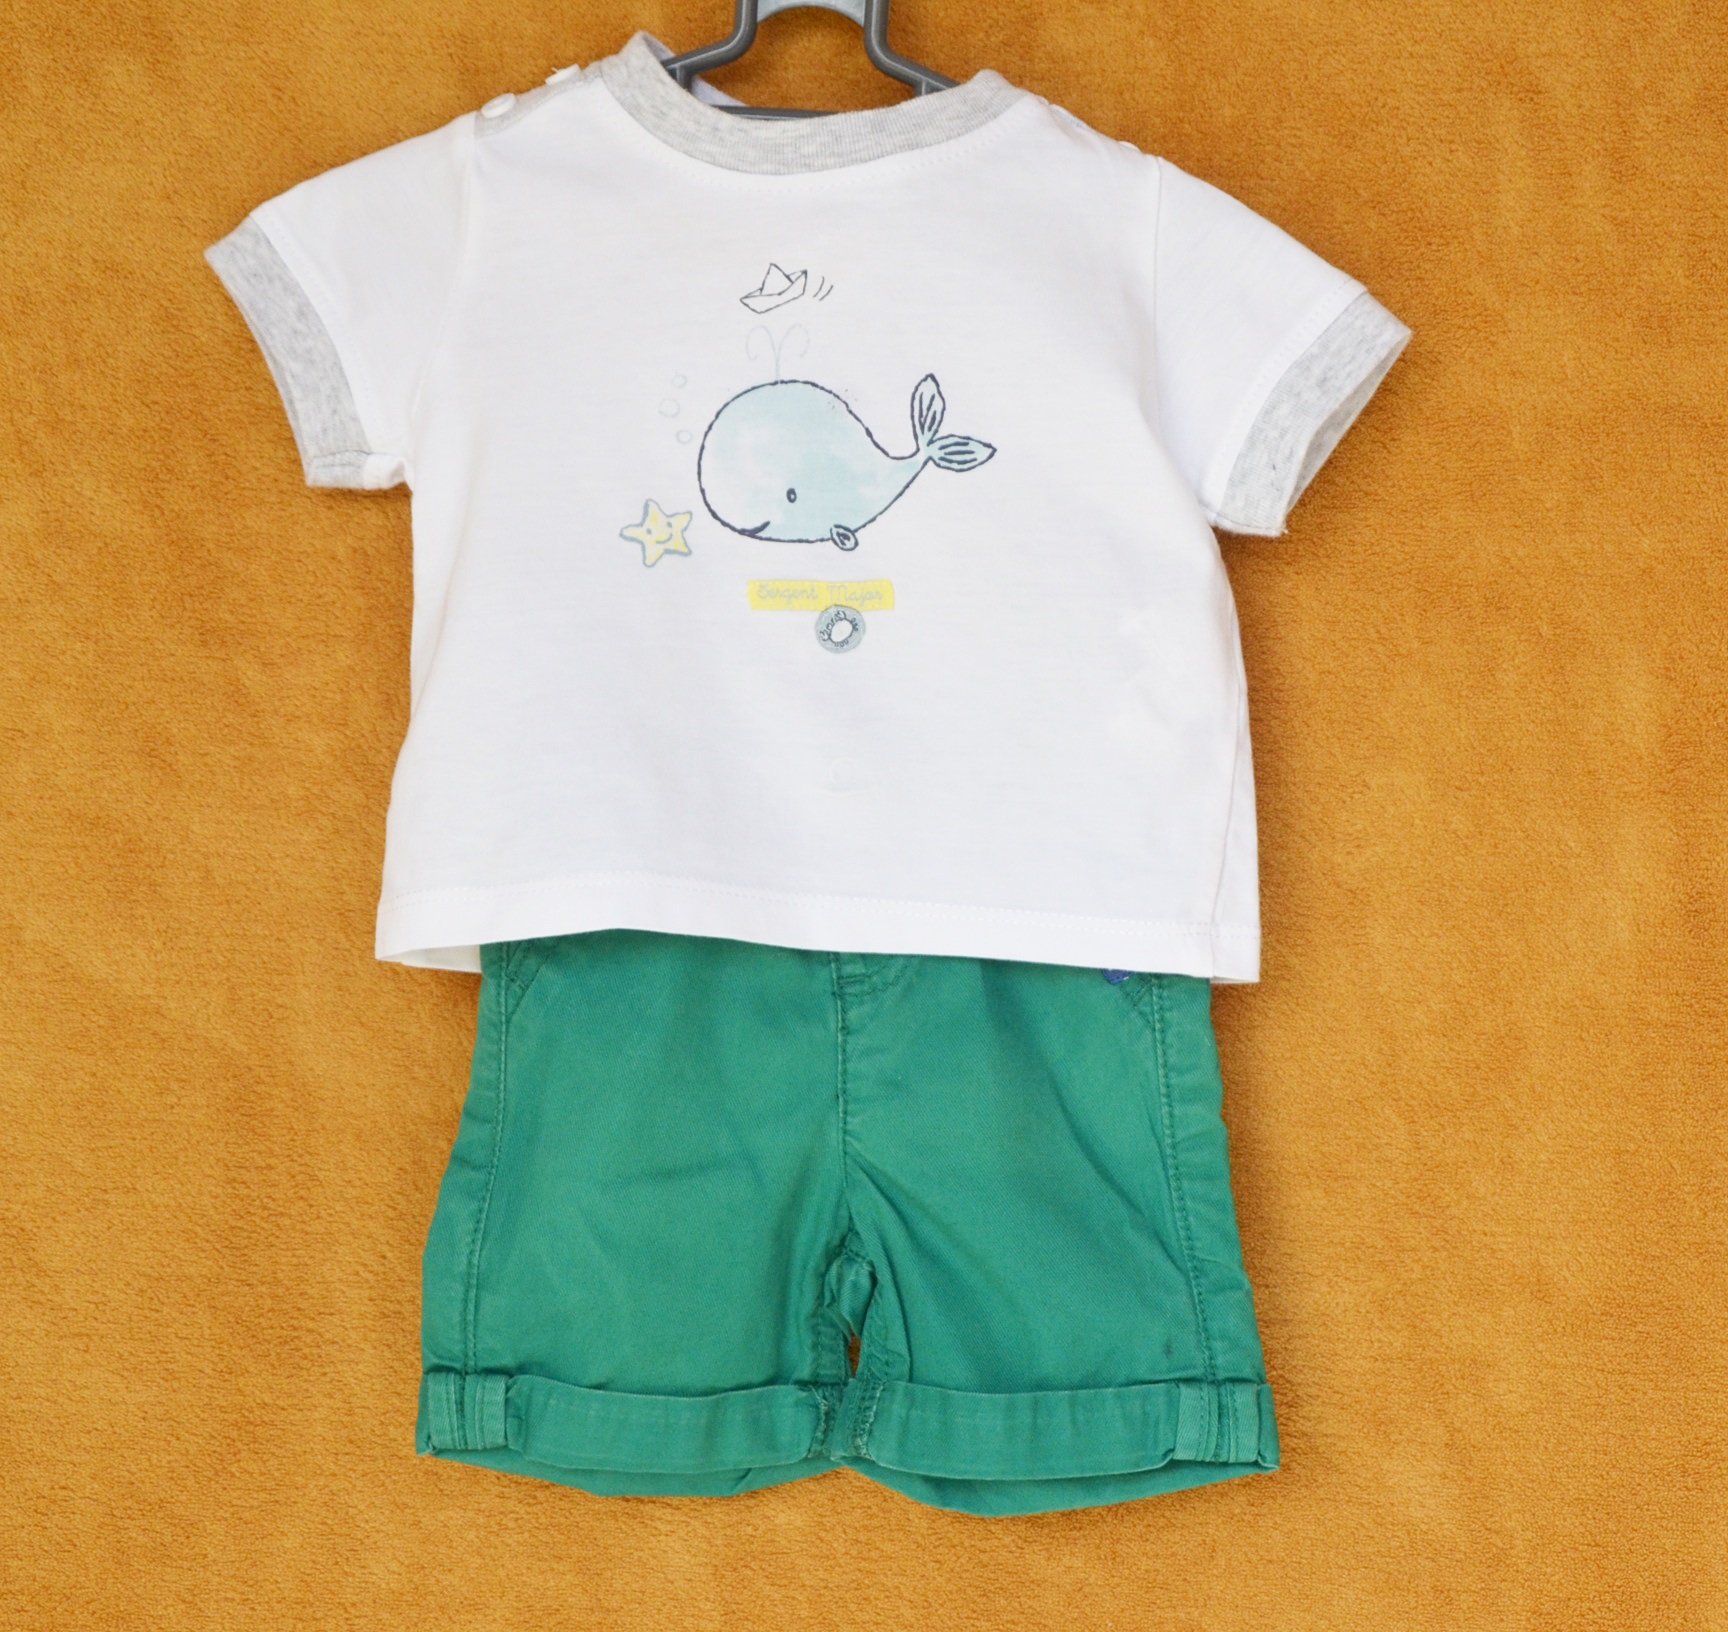 Ensemble Culotte Vert - Tee-shirt Blanc Sergent Major - 3 M